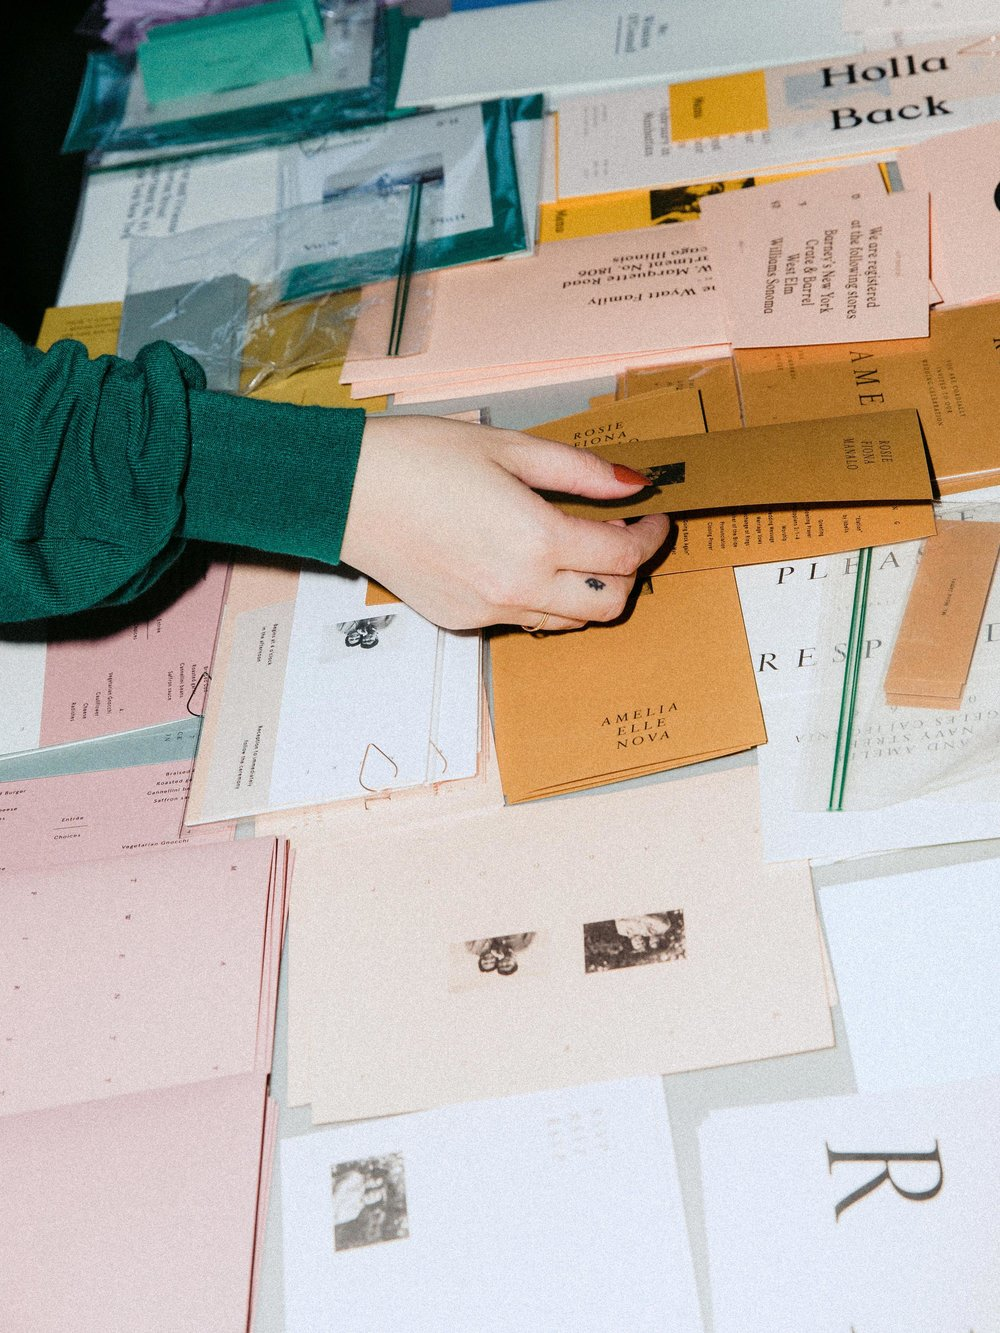 Interview with Katrina from Goods Gang on the Print Club Ltd. Journal